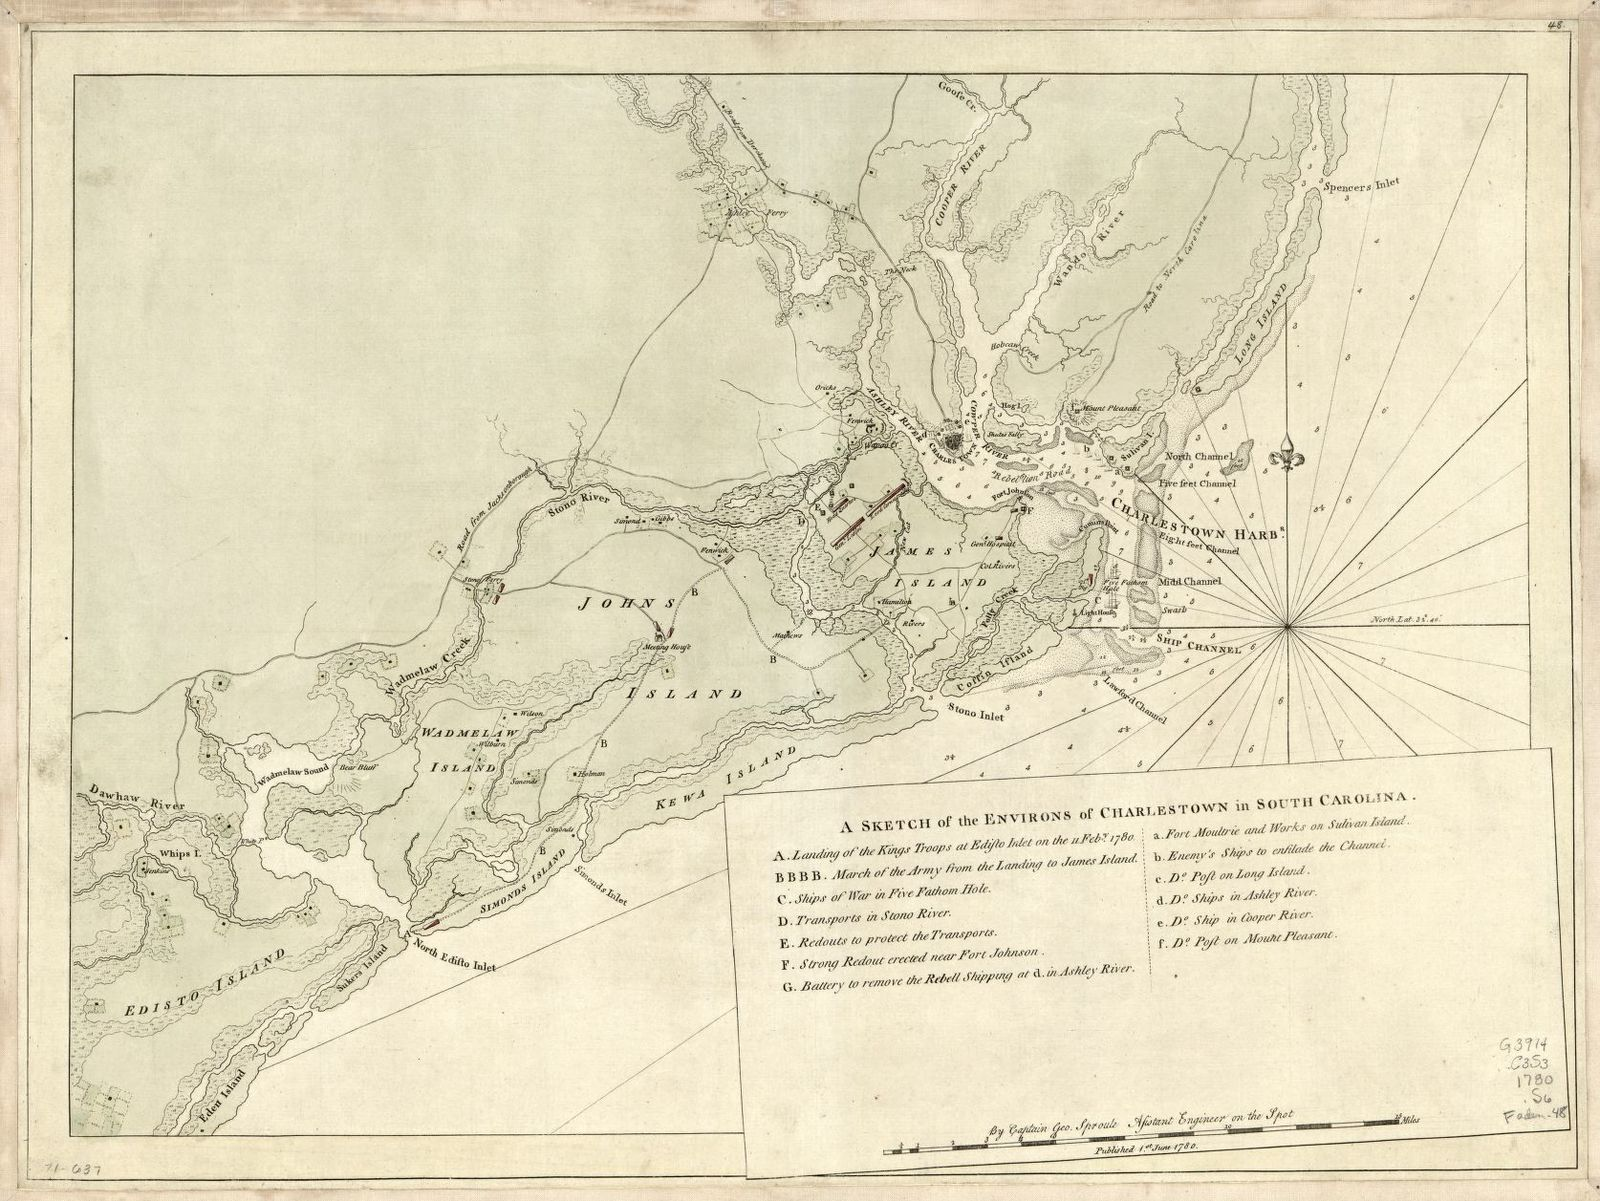 A sketch of the environs of Charlestown in South Carolina.